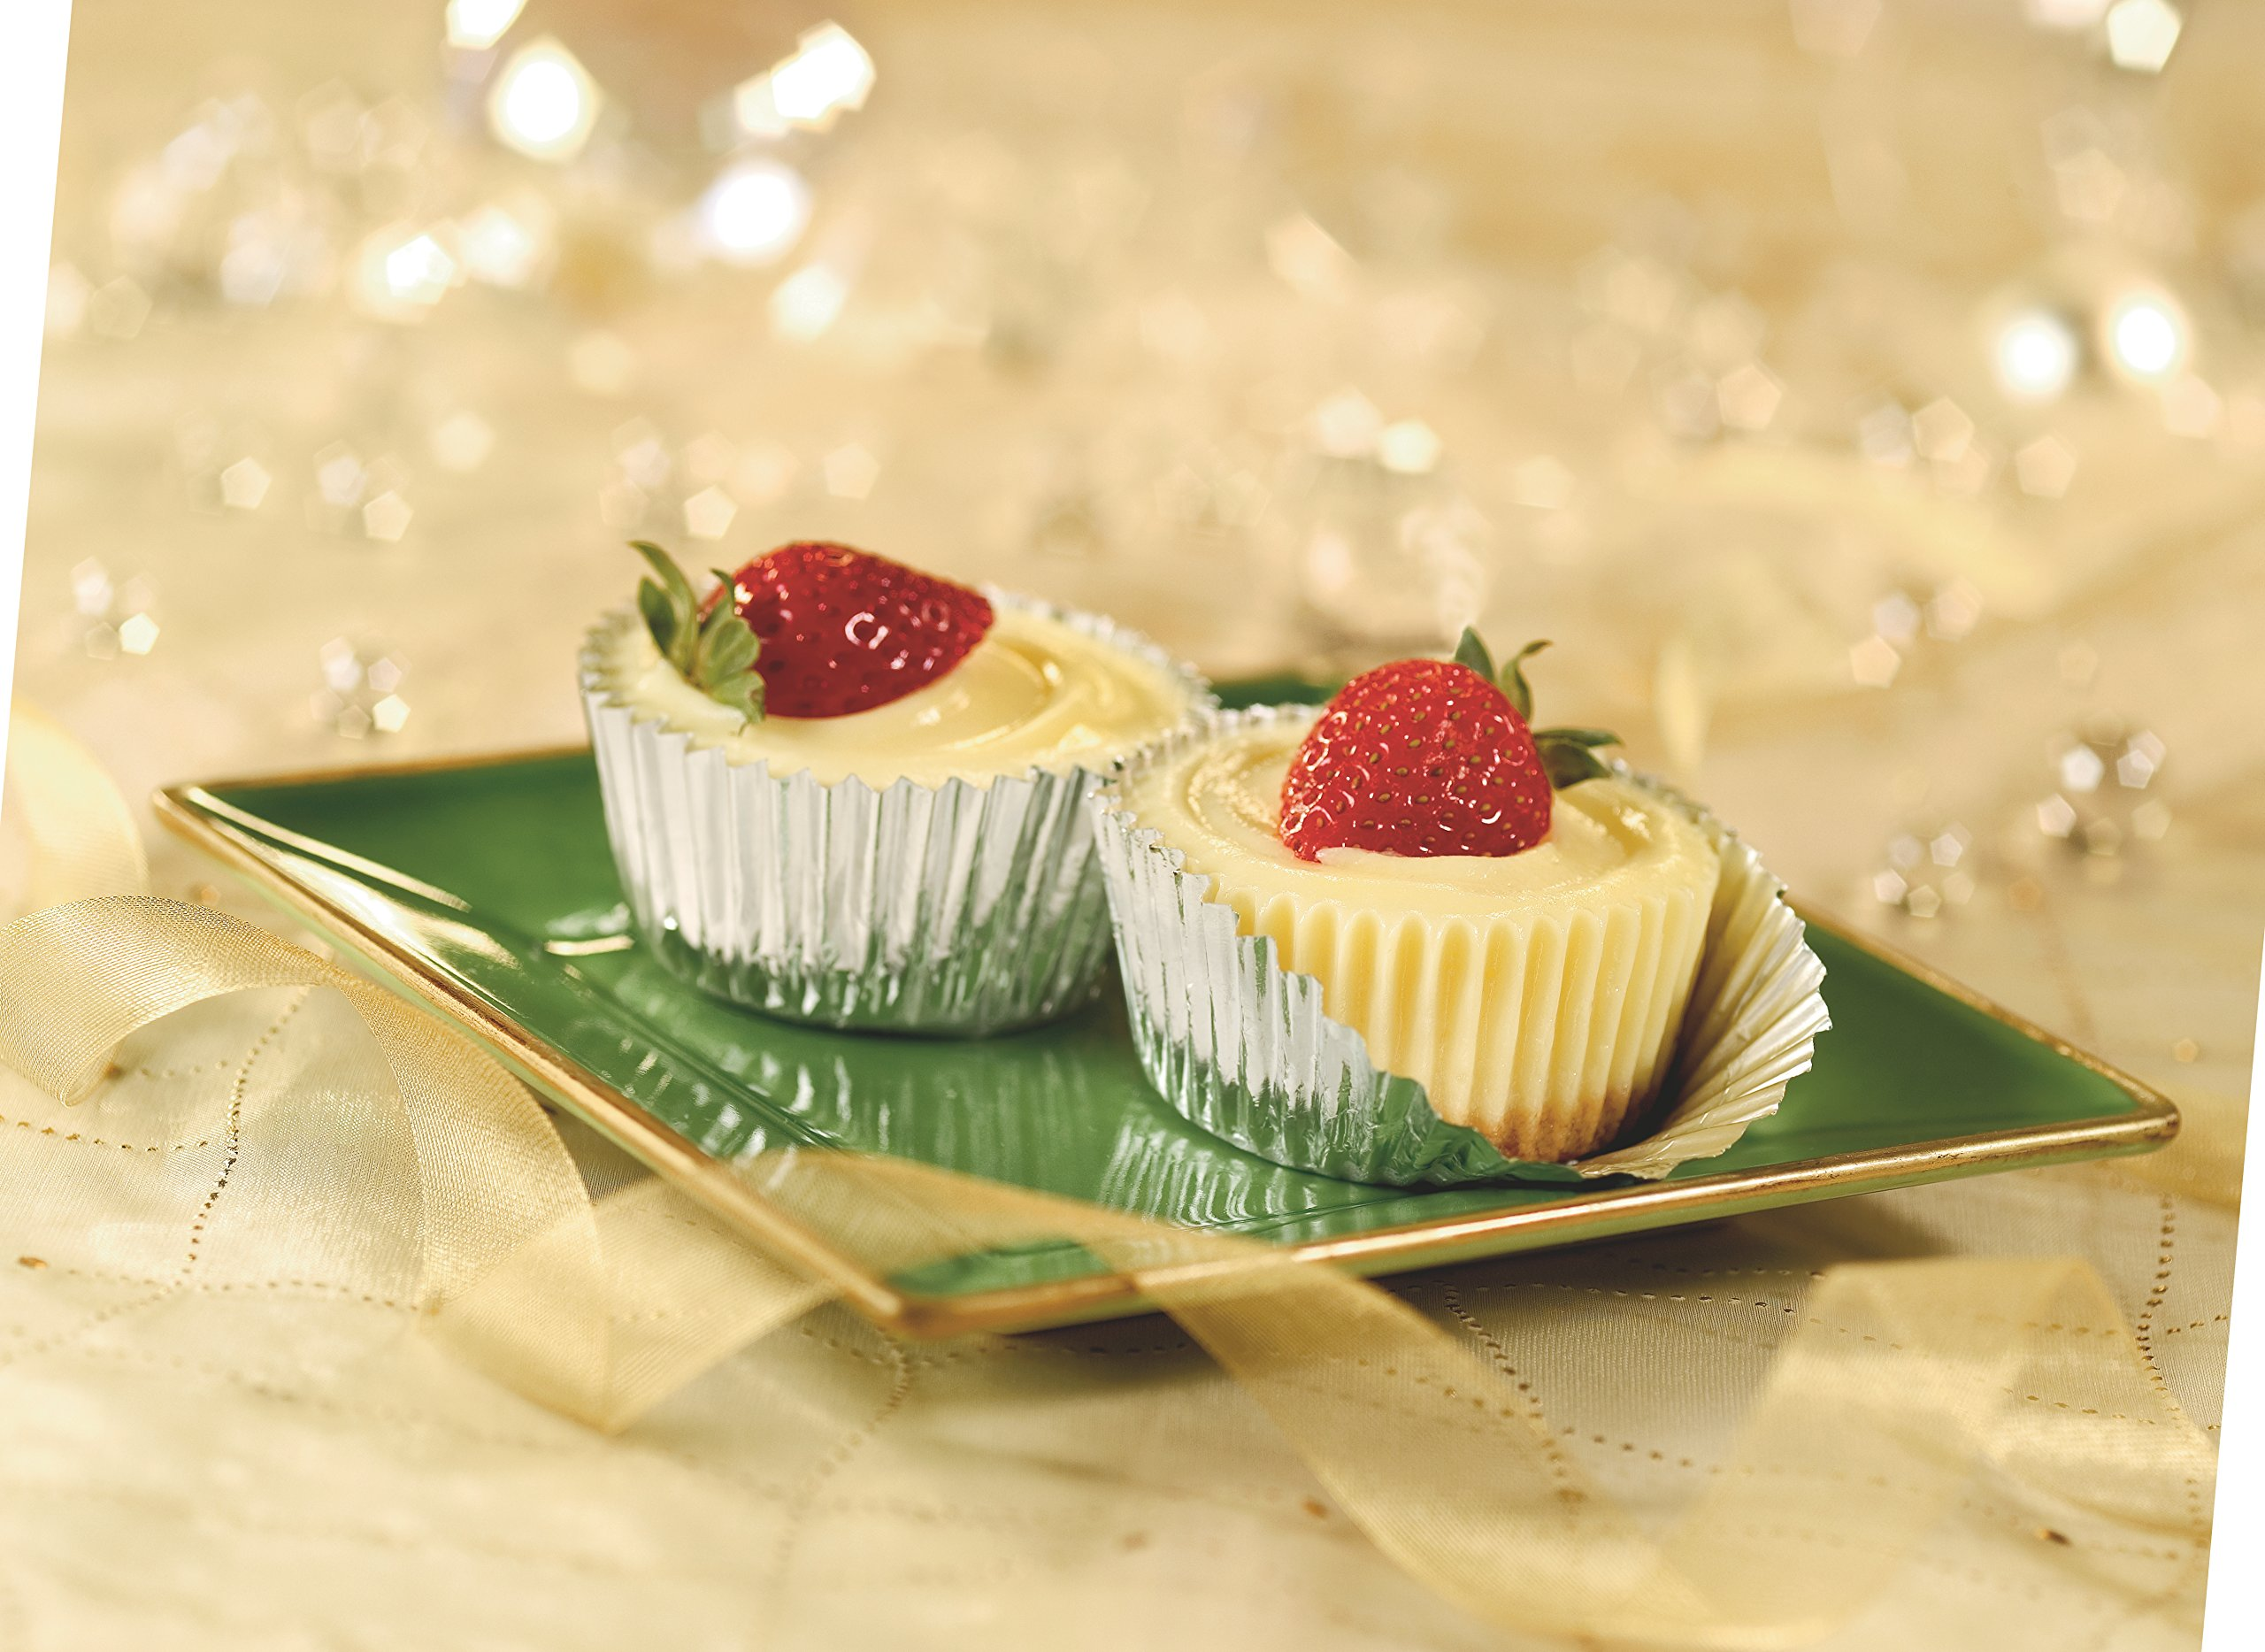 Reynolds Foil Cupcake Liners - 24 Packs of 32 Liners (768 Total) by Reynolds